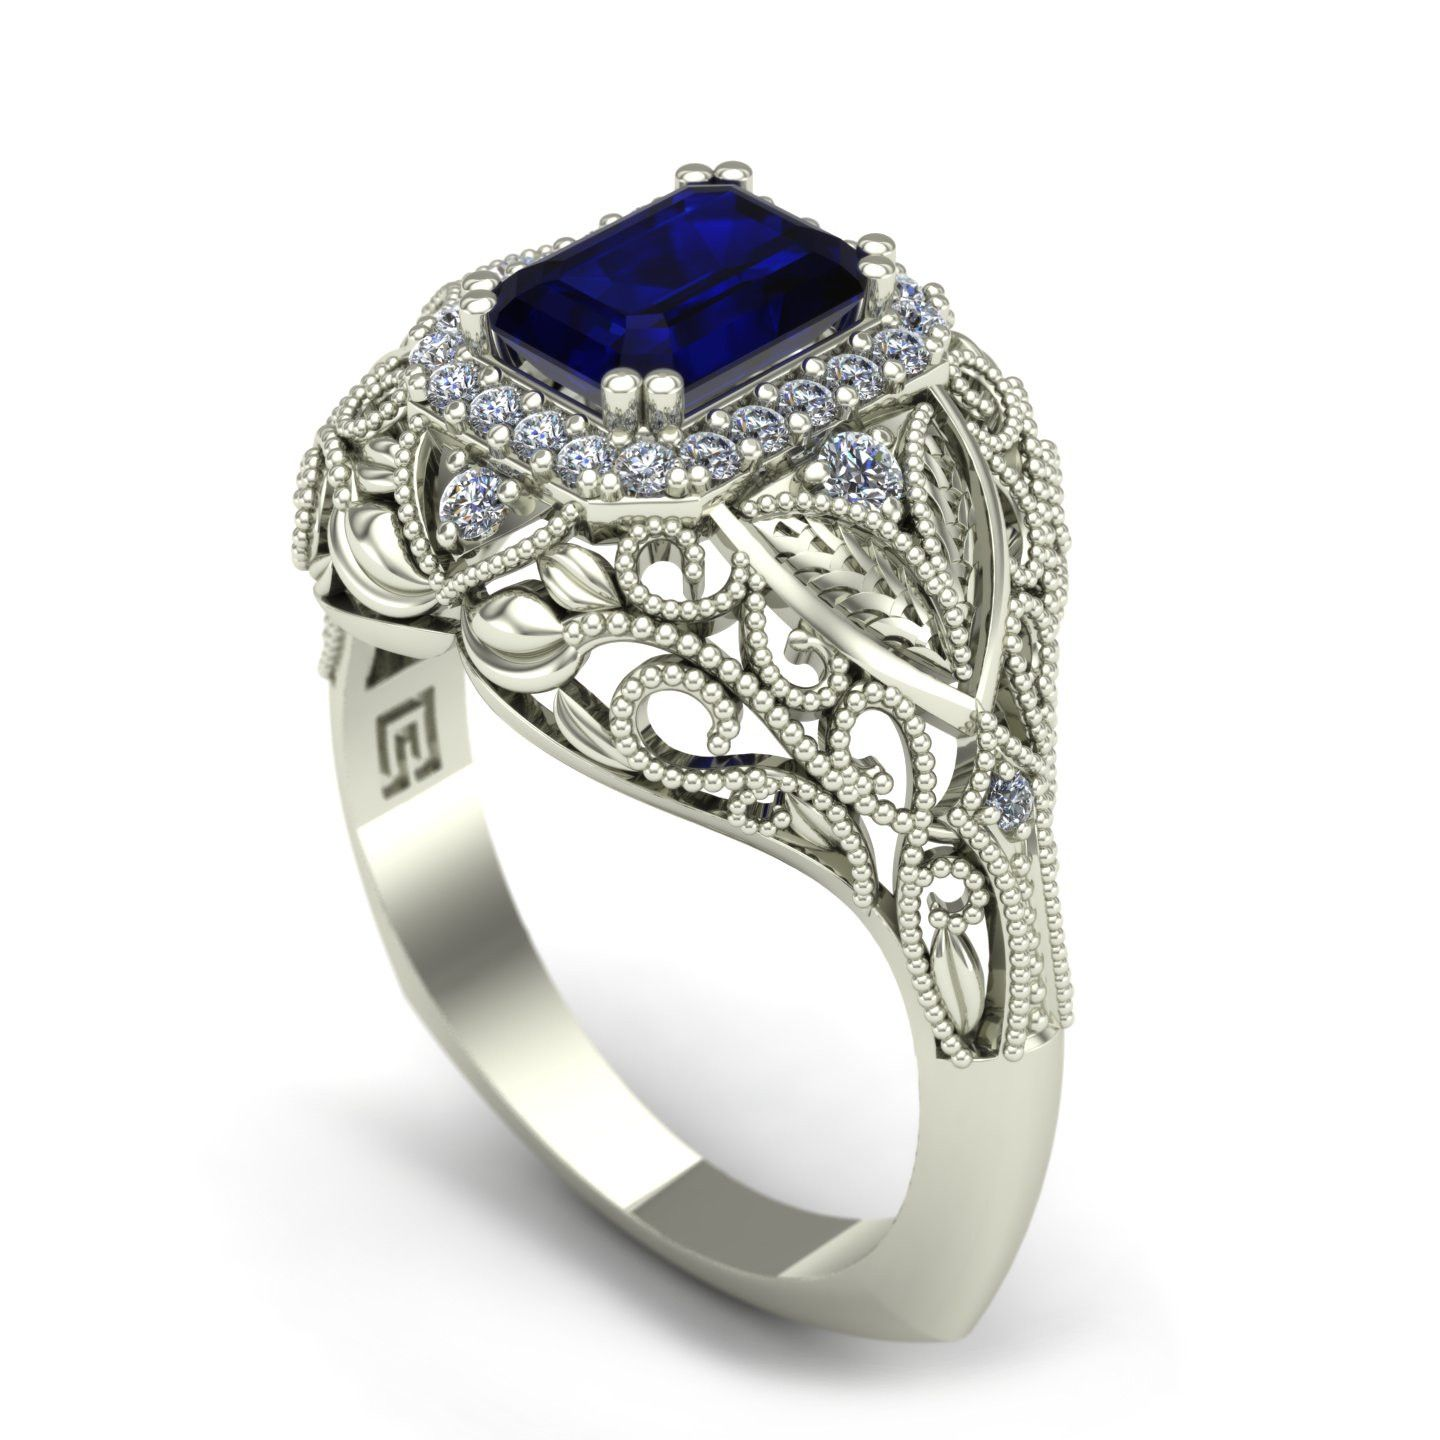 An Emerald Cut Blue Sapphire Is Set In A Halo Of Diamonds And Surrounded By Scrolls Vines Leaves This White Gold Vintage Style Cocktail Ring